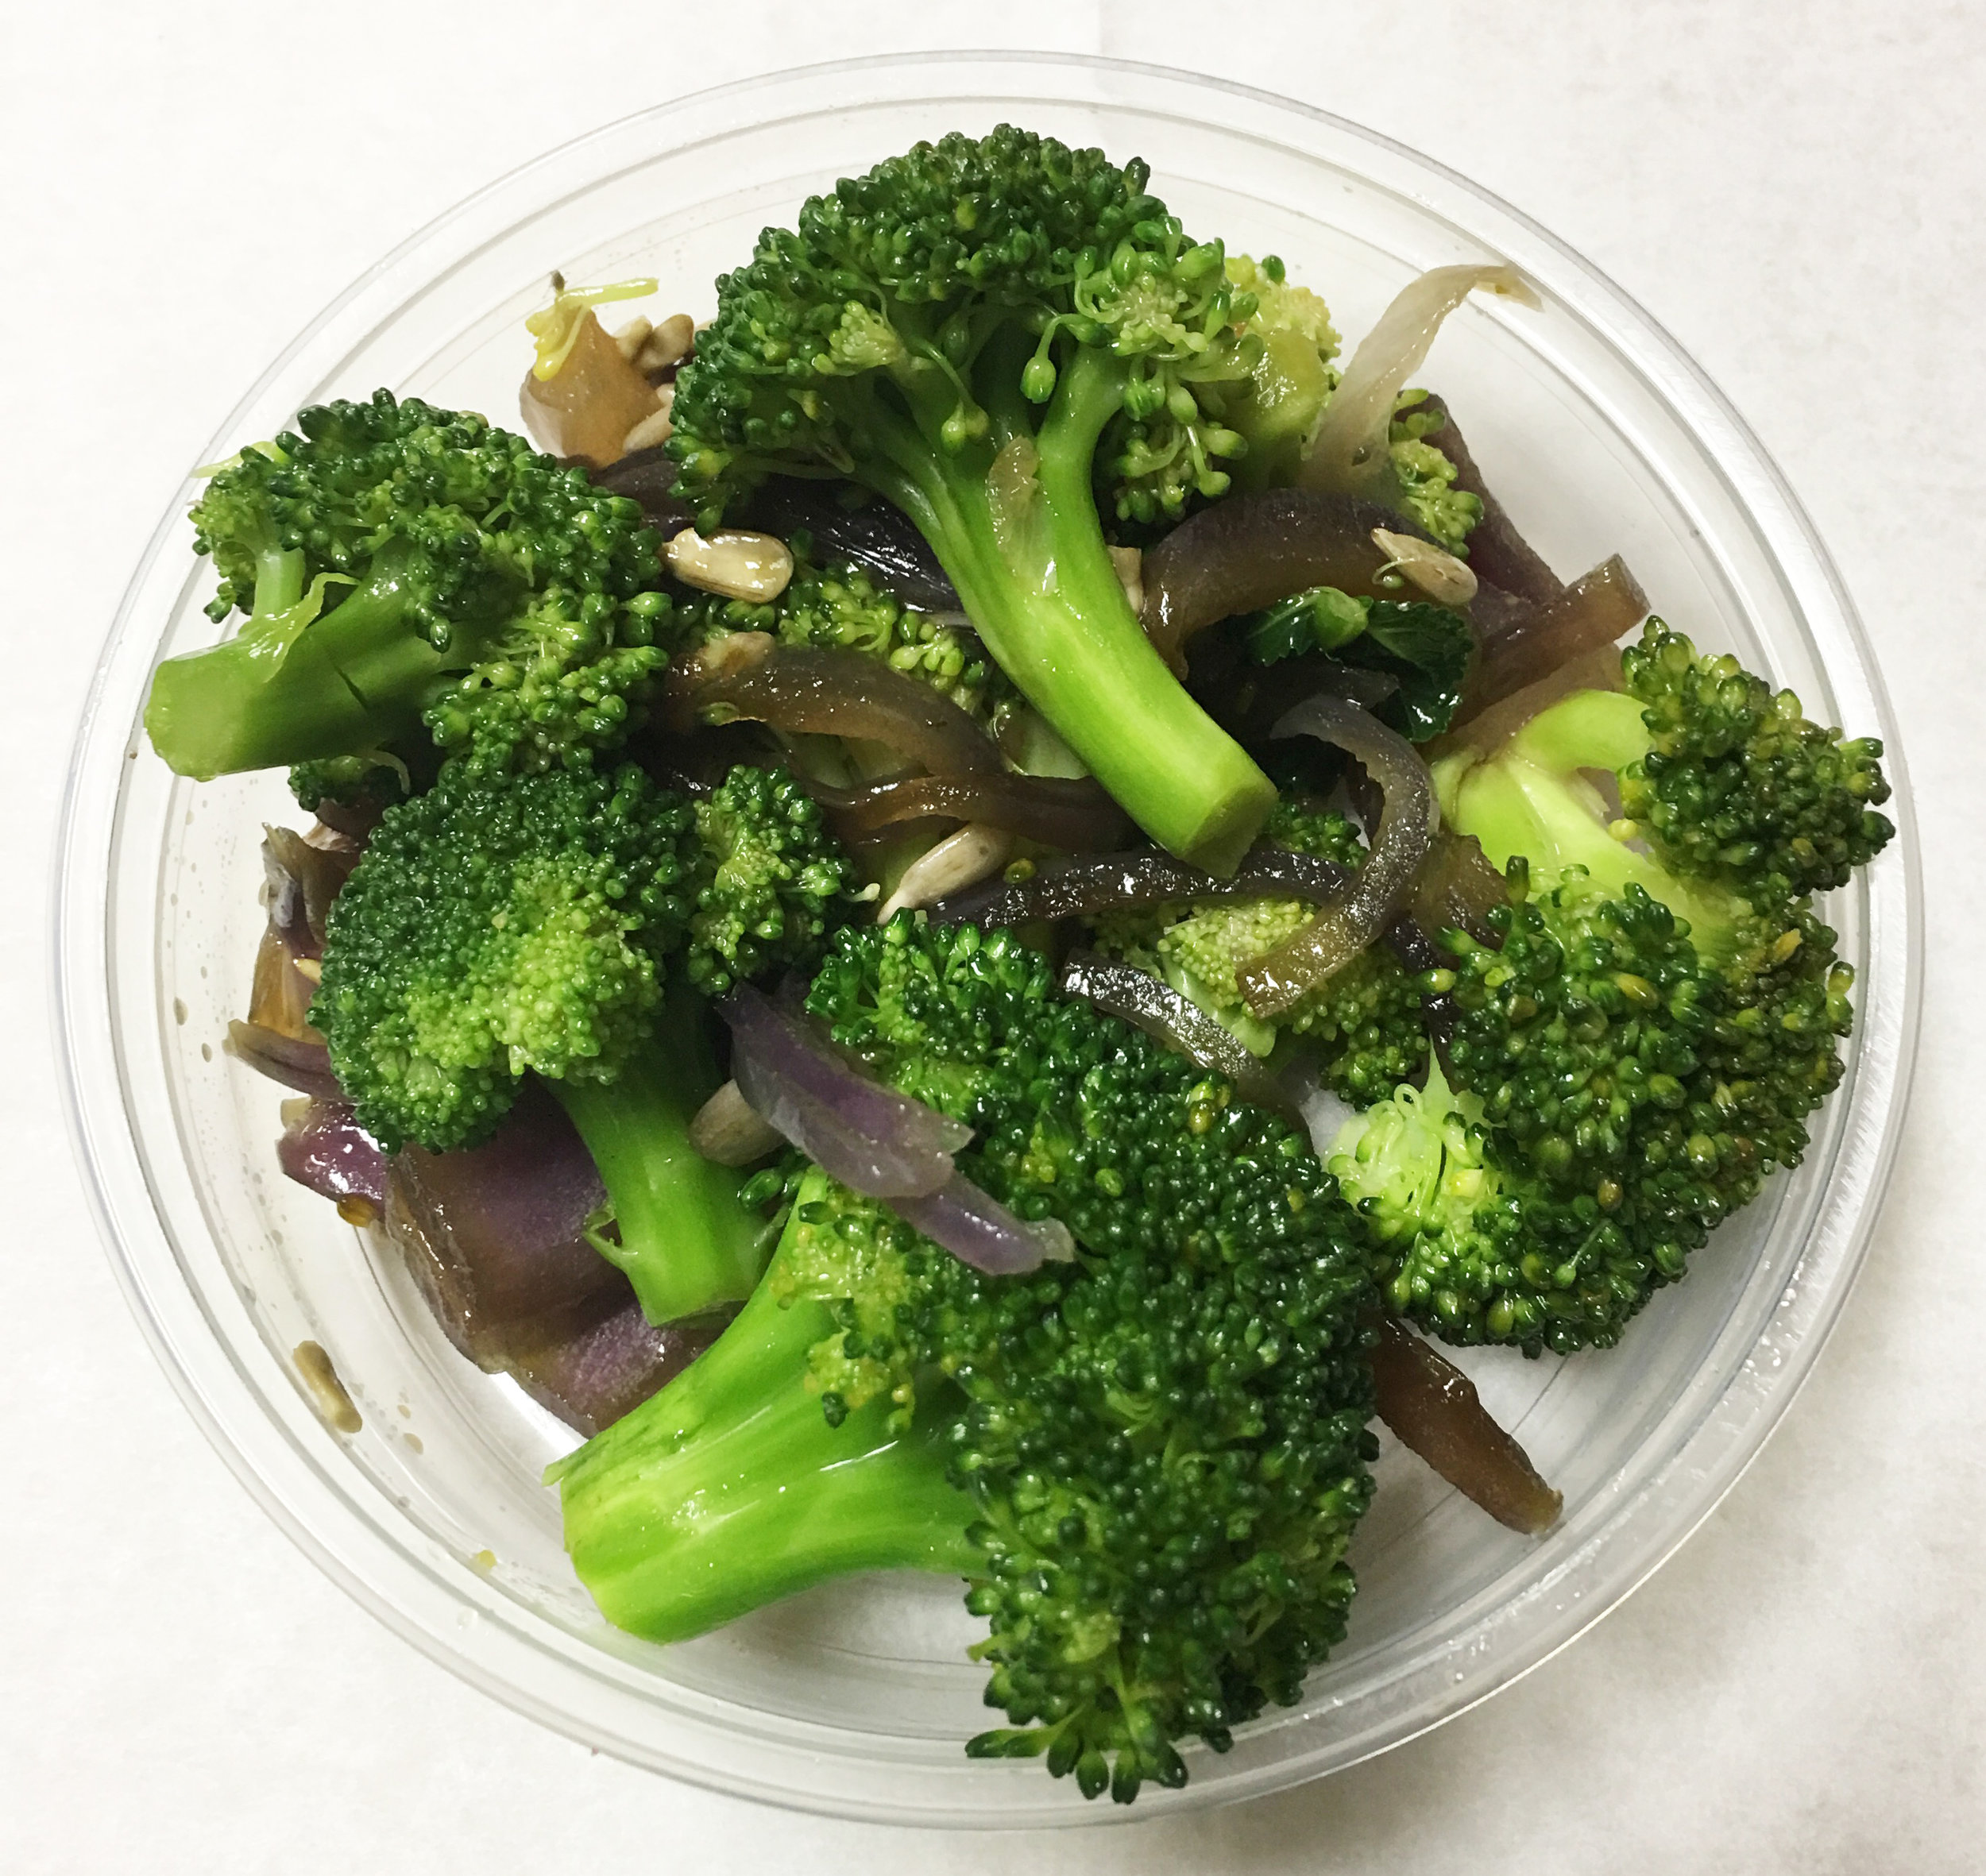 Boiled broccoli with red onion and sunflower seeds.